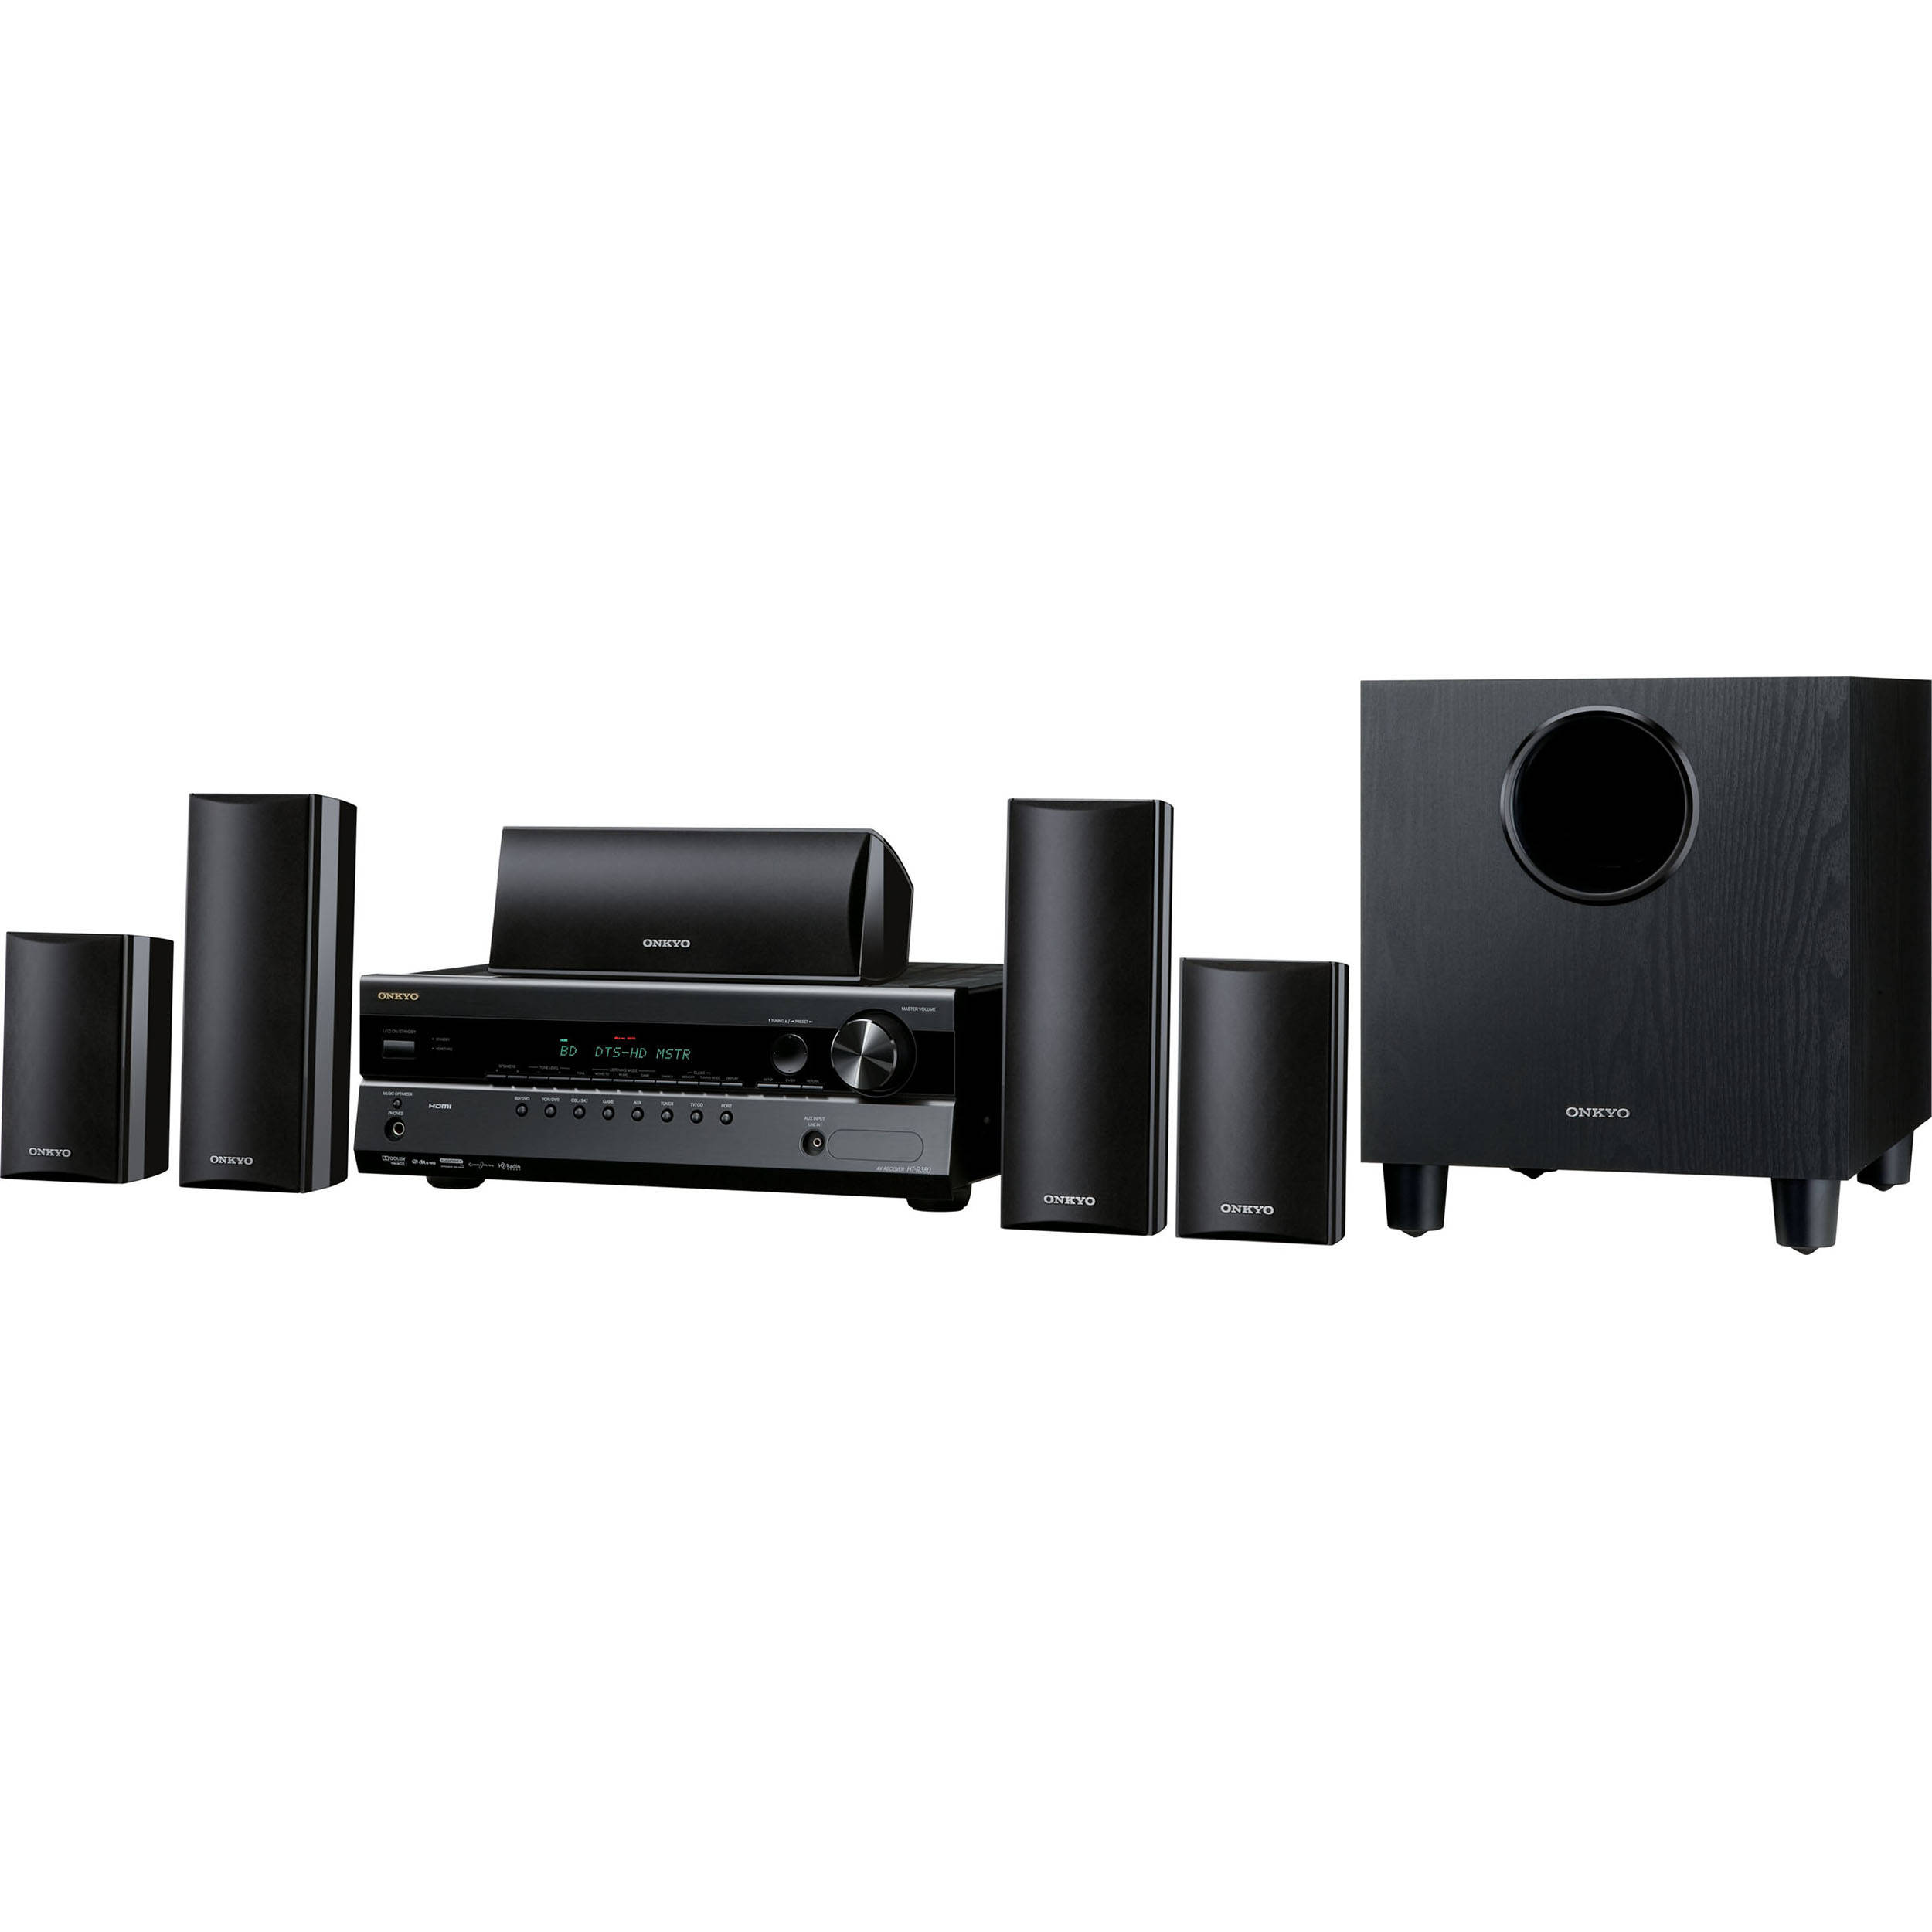 onkyo ht s3300 5 1 channel home theater system ht s3300 b h. Black Bedroom Furniture Sets. Home Design Ideas